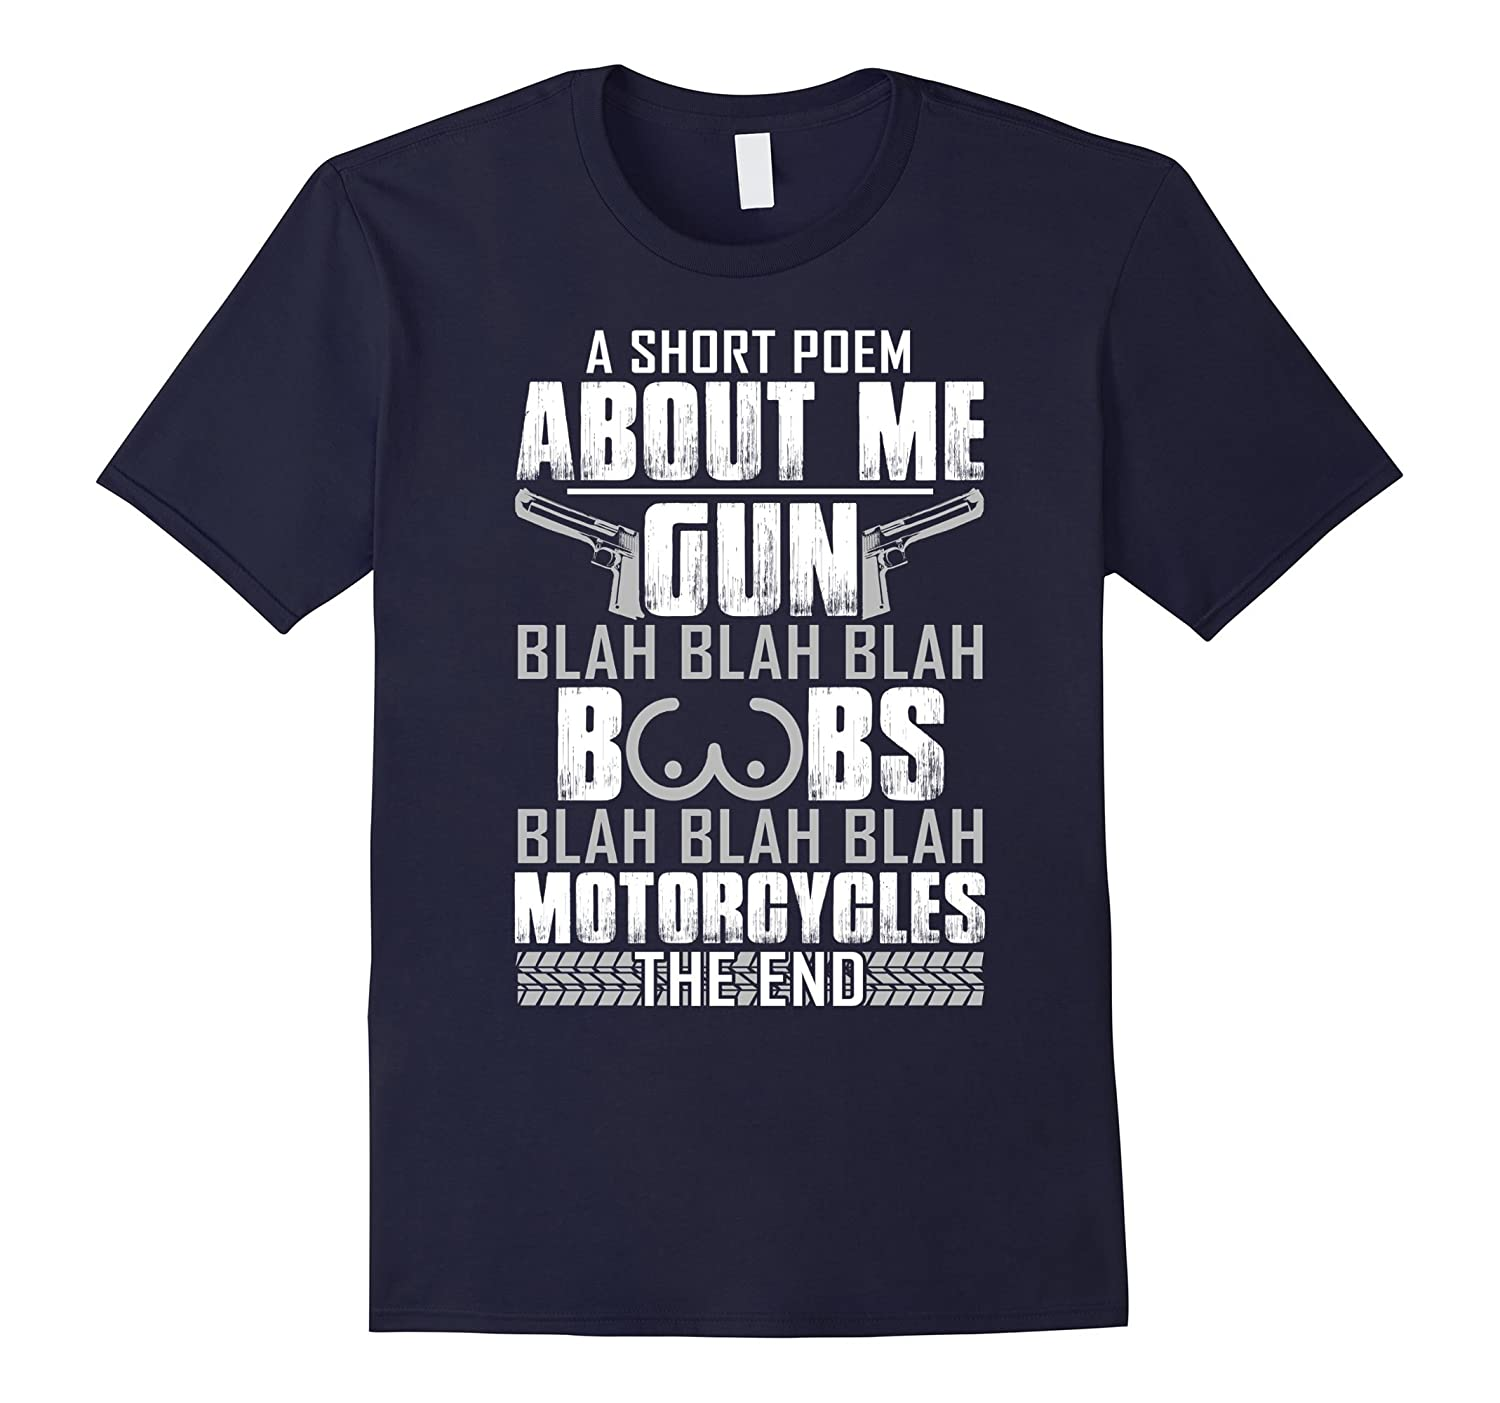 A Short Poem About Me Gun Motocycles Funny Biker T-Shirt-TH